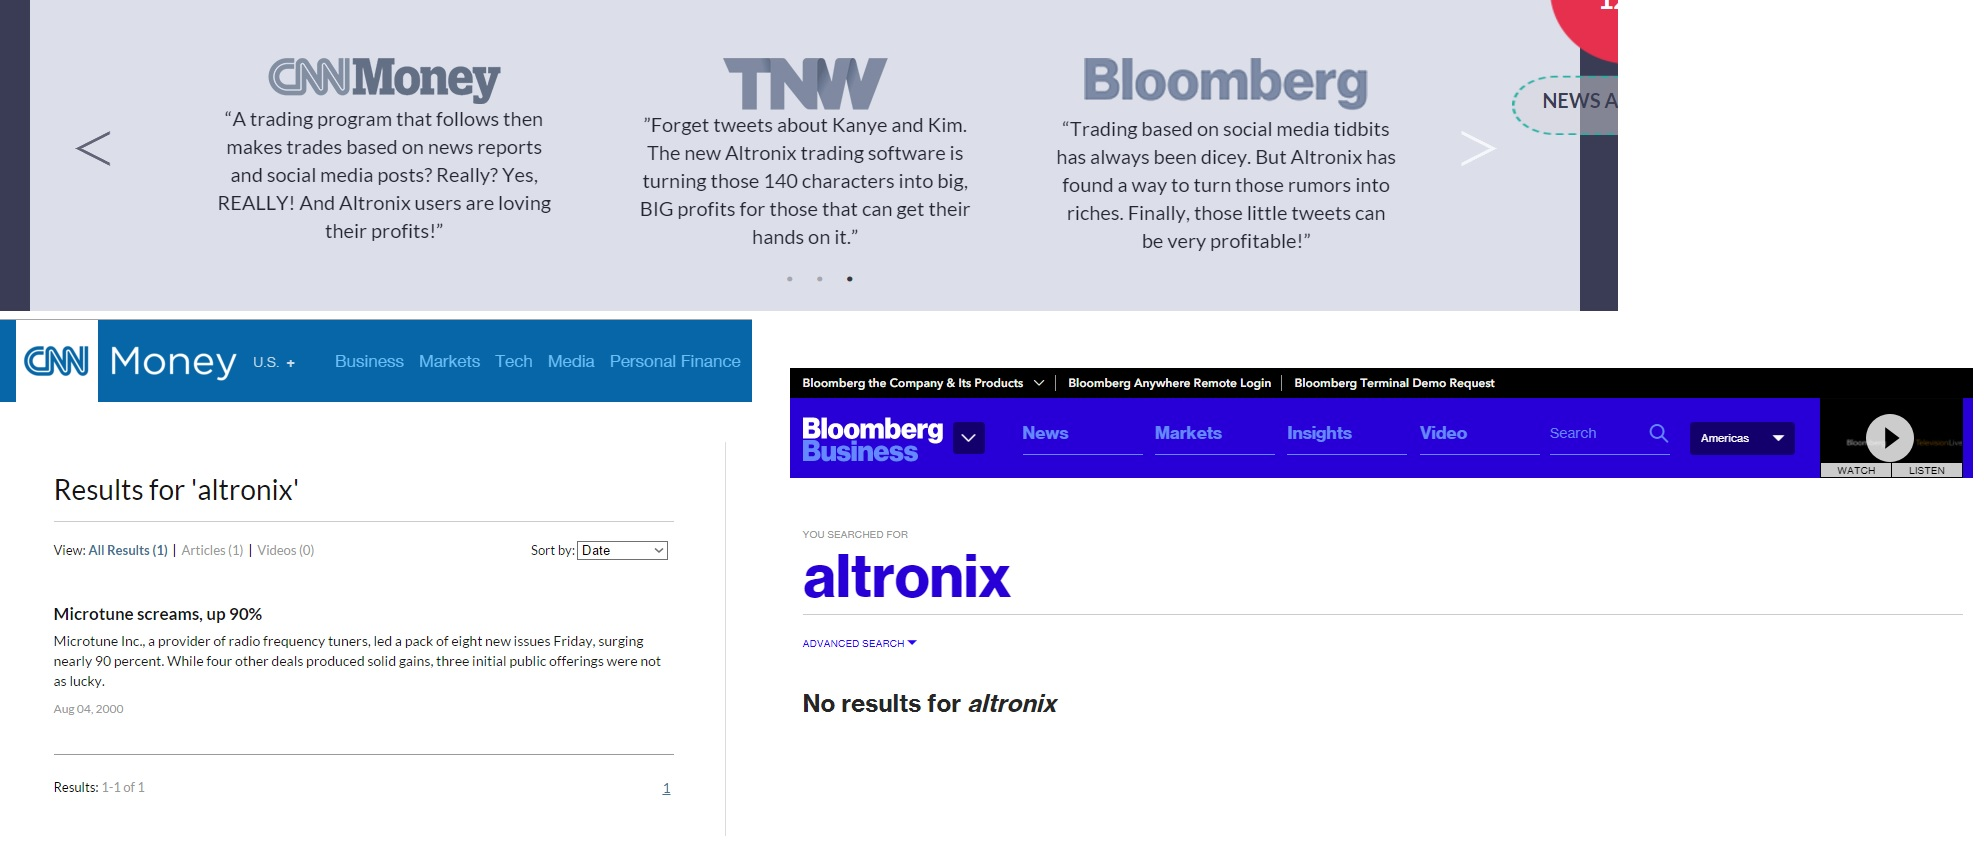 On the Altronix Trading Bot web page you can see some quotes about